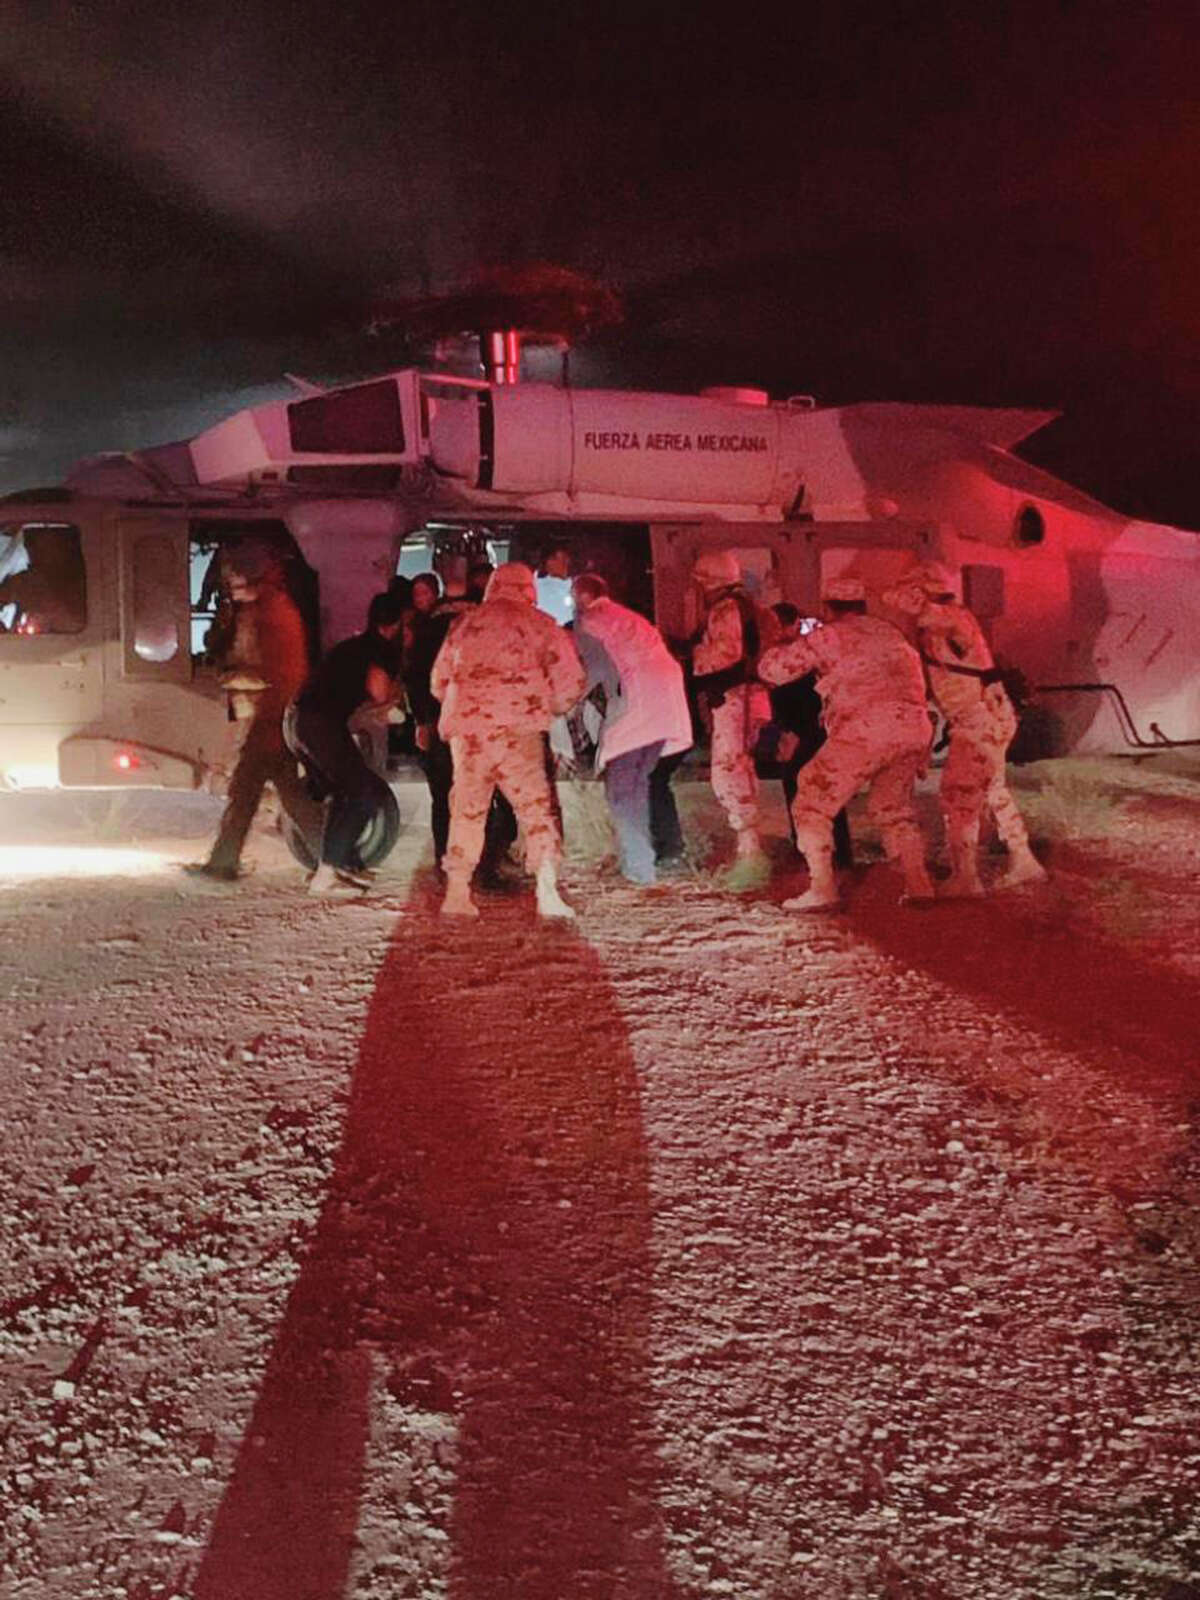 In this photo provided by the Sonora state Health Secretary, children of the extended LeBaron family, who were injured in an ambush are taken aboard a Mexican Airforce helicopter to be flown to the Mexico-U.S. border, from the border between the Mexican states of Chihuahua and Sonora, Monday, Nov.4, 2019. The children were injured when drug cartel gunmen ambushed three SUVs along a dirt road, slaughtering six children and three women, all U.S. citizens living in northern Mexico, in a grisly attack that left one vehicle a burned-out, bullet-riddled hulk. (Sonora state Health Secretary via AP)